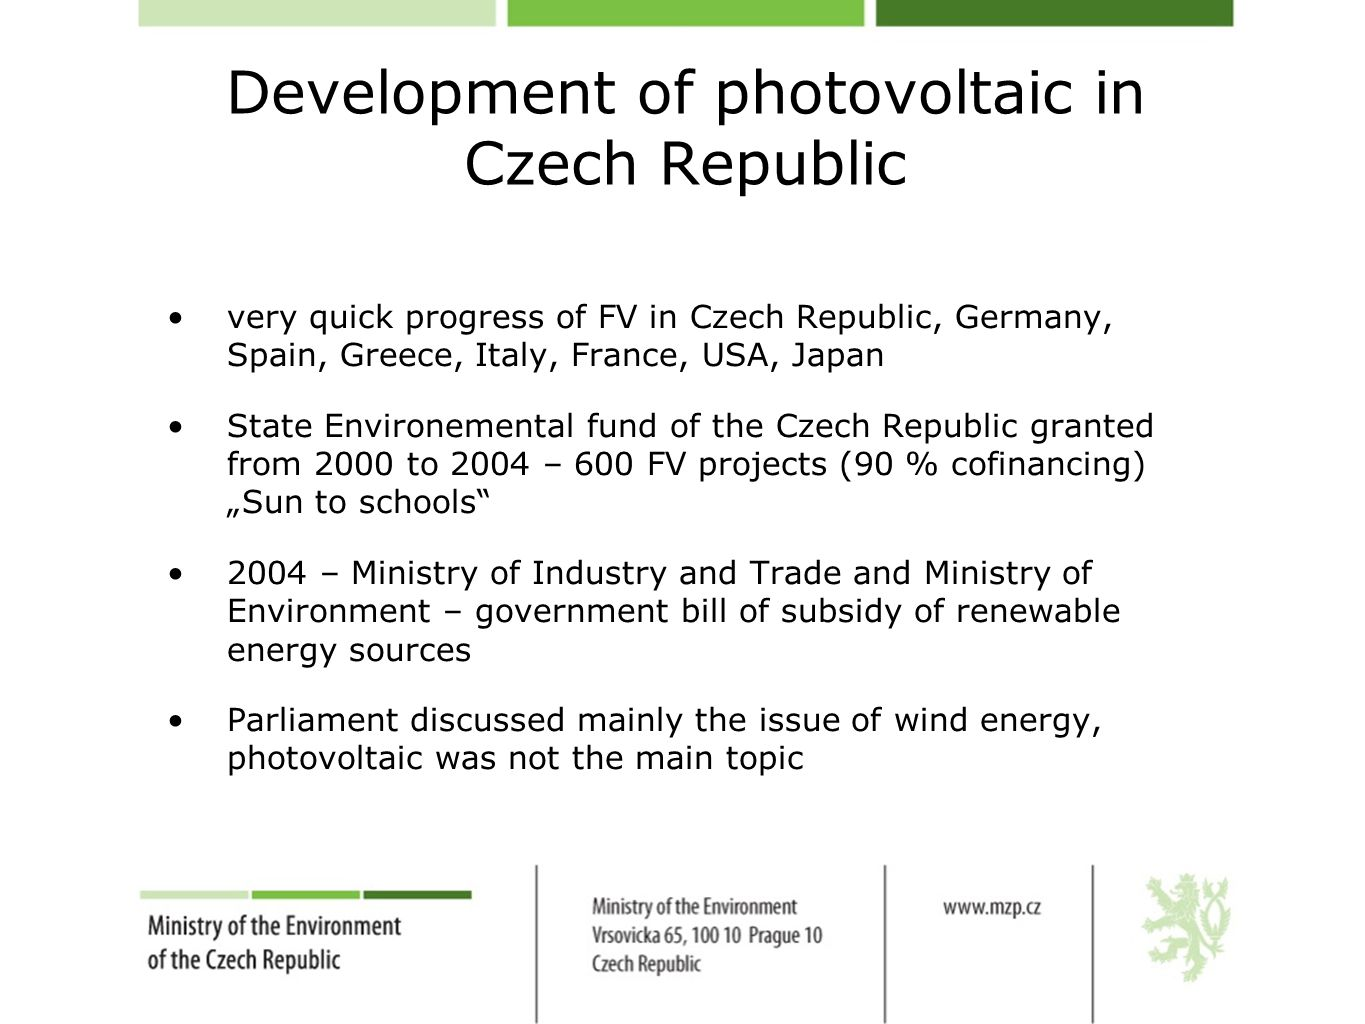 "Development of photovoltaic in Czech Republic very quick progress of FV in Czech Republic, Germany, Spain, Greece, Italy, France, USA, Japan State Environemental fund of the Czech Republic granted from 2000 to 2004 – 600 FV projects (90 % cofinancing) ""Sun to schools 2004 – Ministry of Industry and Trade and Ministry of Environment – government bill of subsidy of renewable energy sources Parliament discussed mainly the issue of wind energy, photovoltaic was not the main topic"